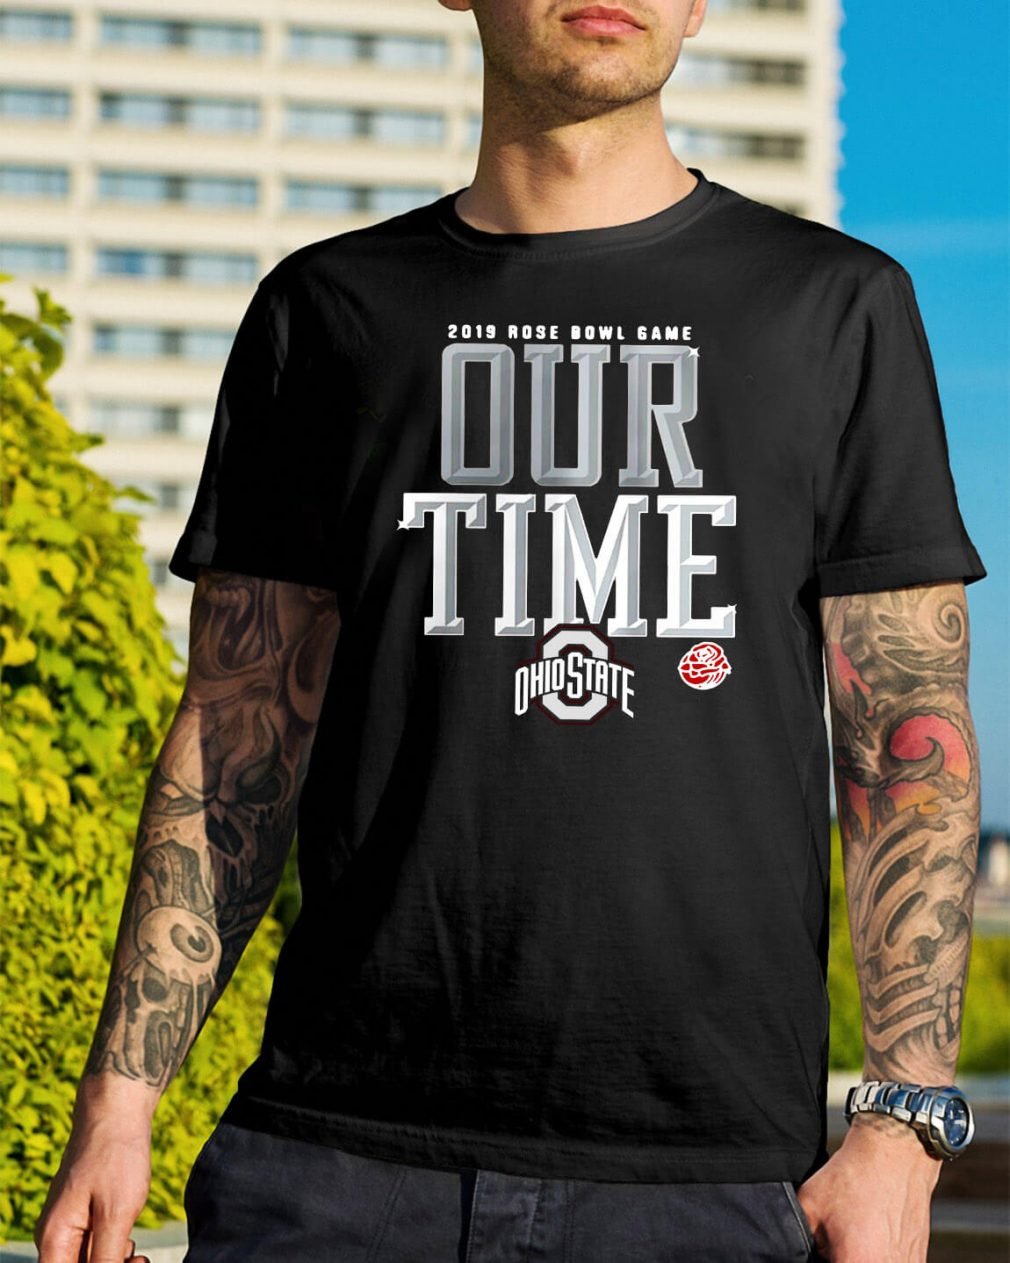 2019 Rose Bowl game our time Ohio State shirt